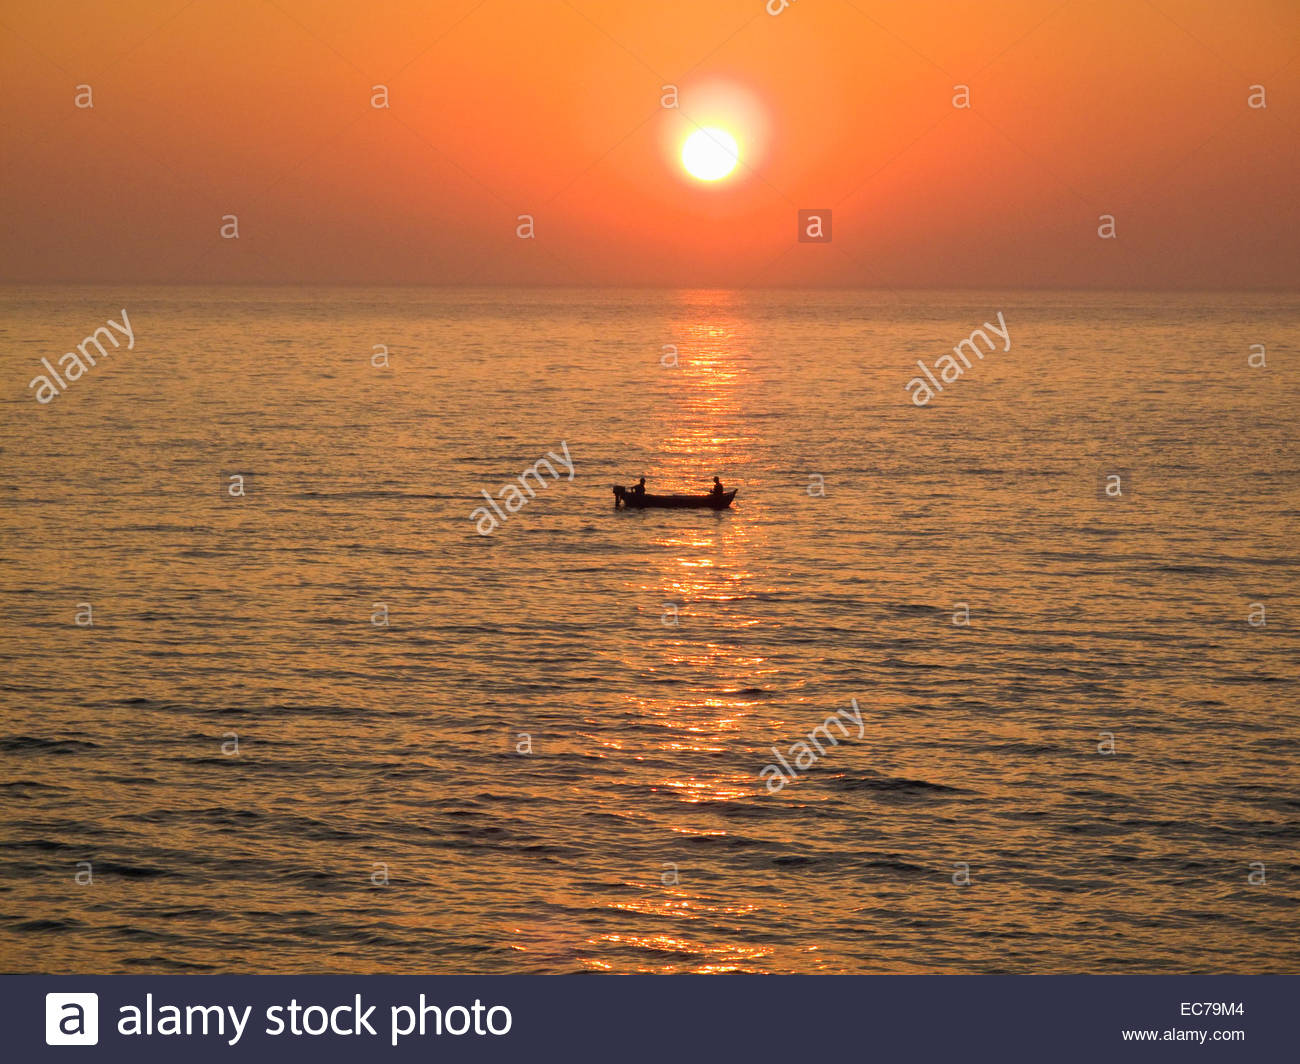 Fishermen in boat at sea with sunset backdrop - Stock Image